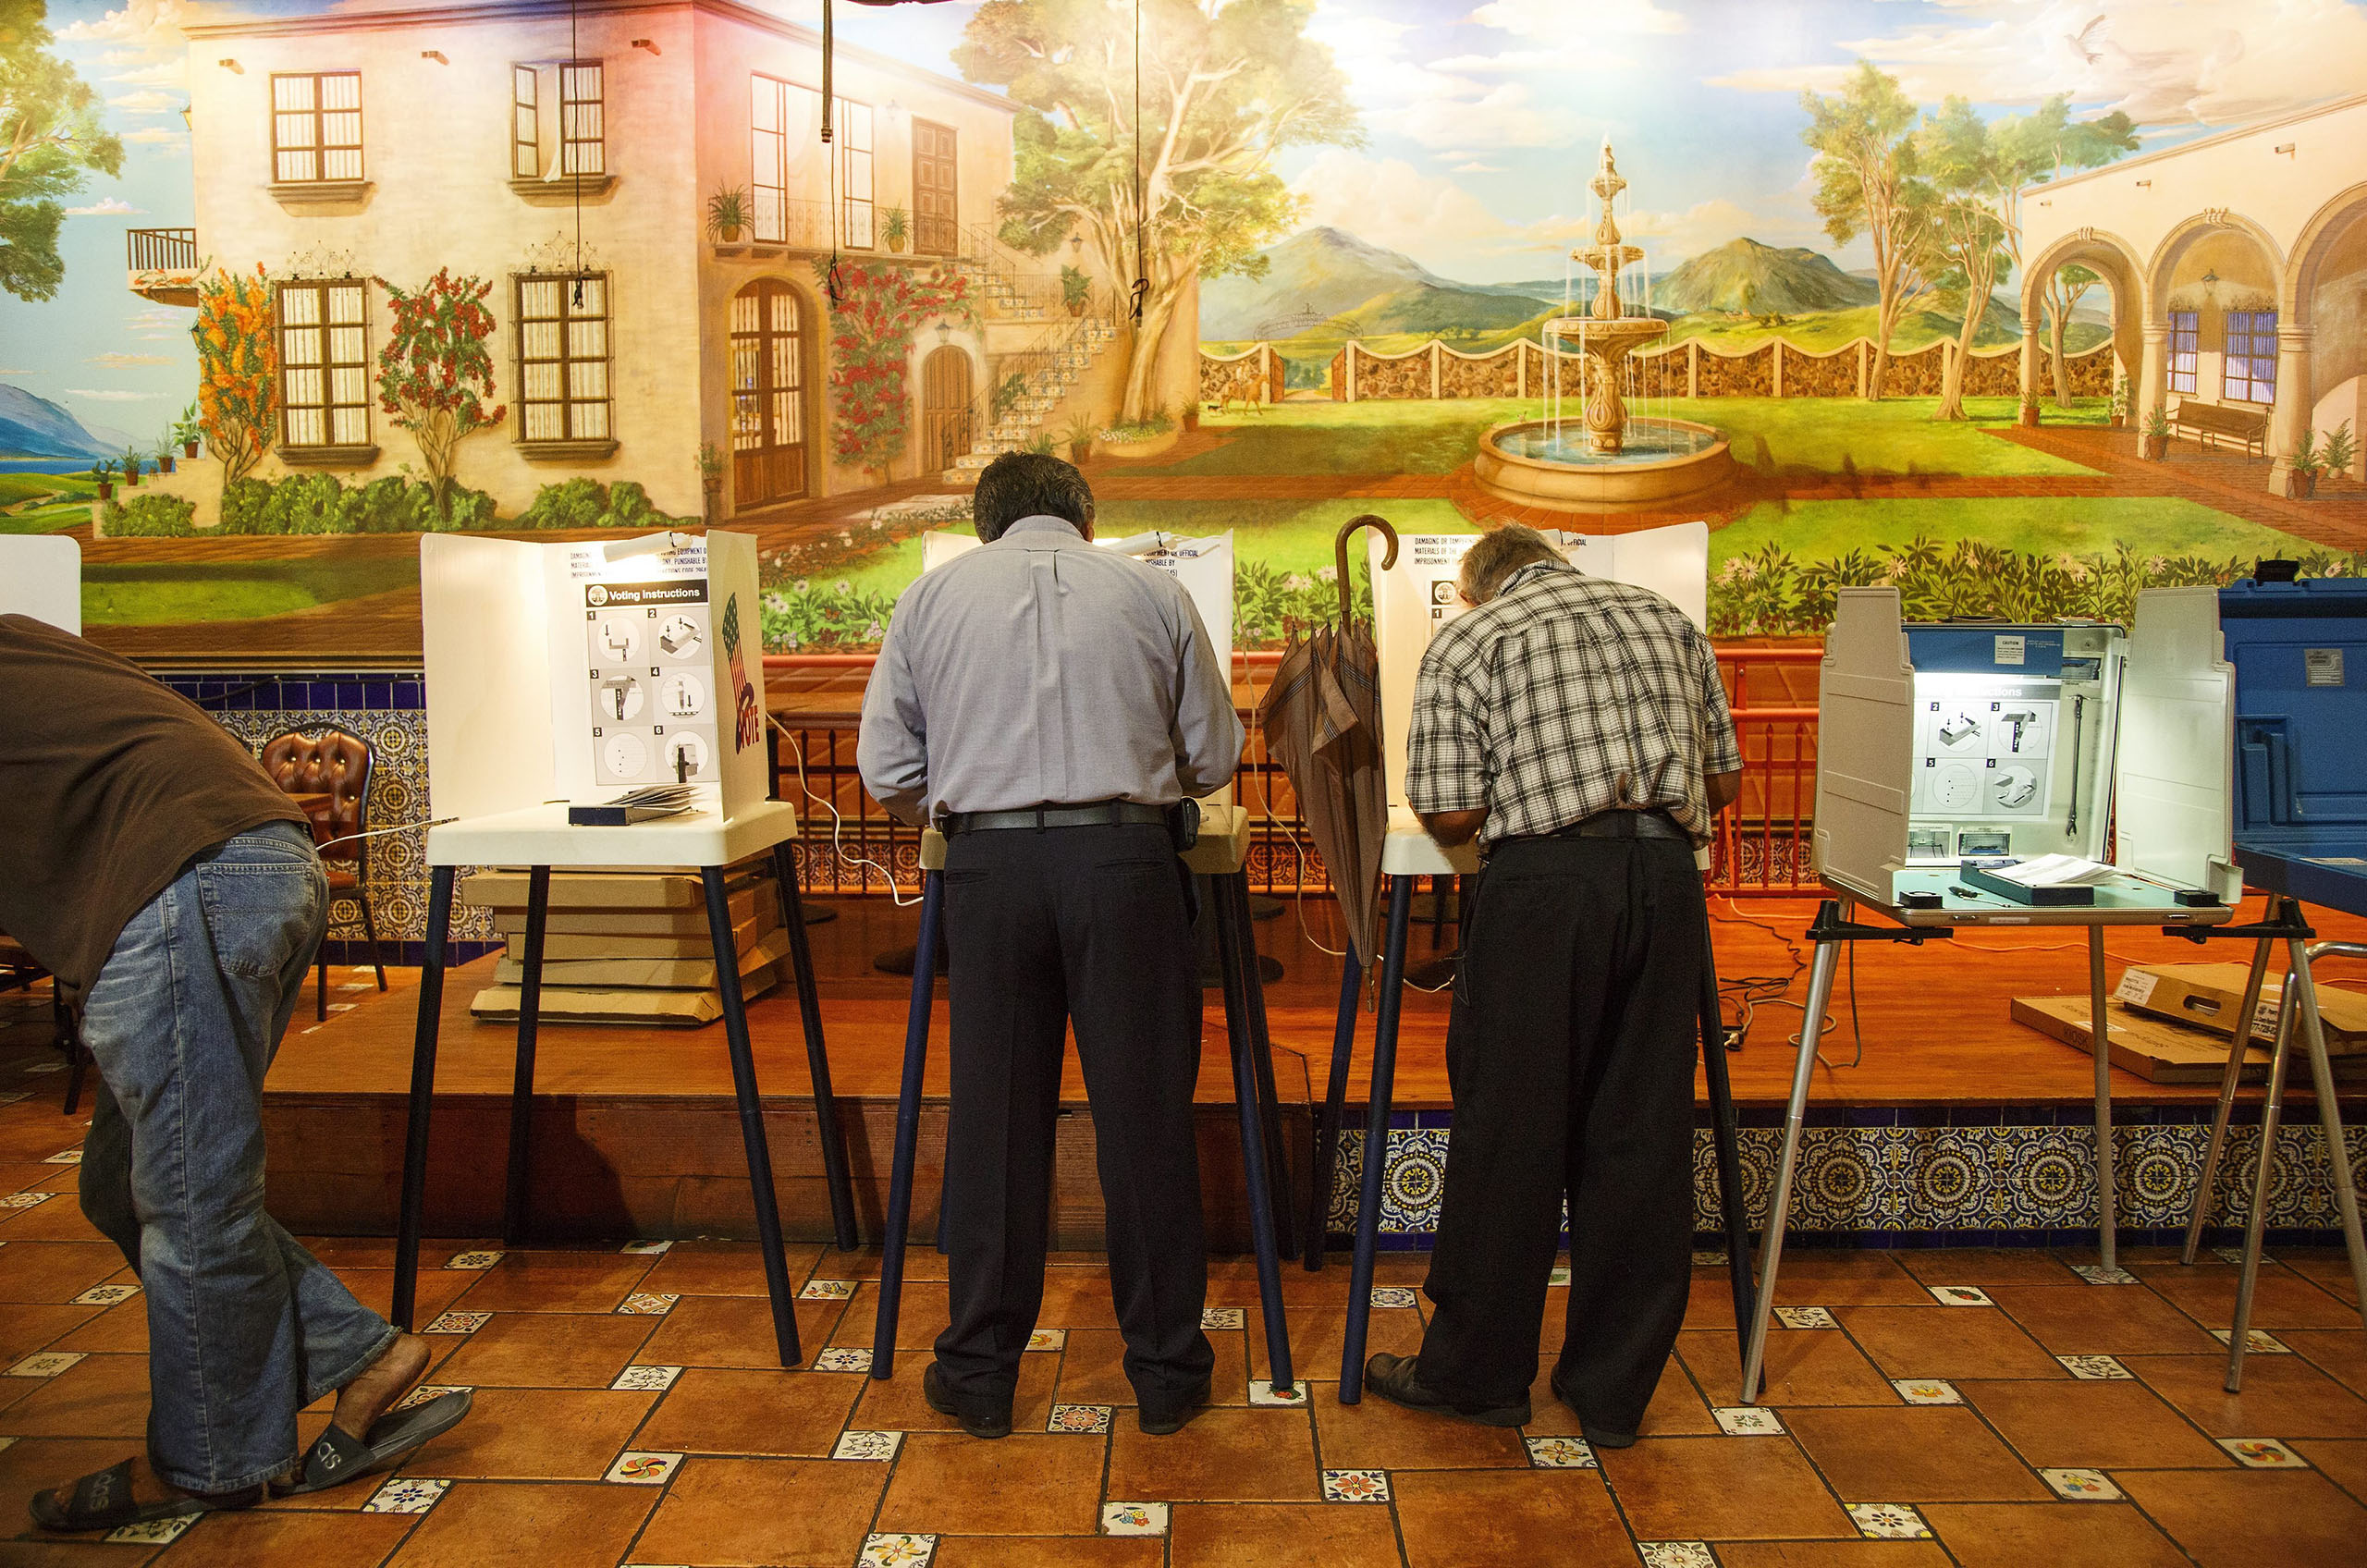 Voters cast their ballots under a mural depicting rural Mexico at the El Mercadito Mariachi restaurant polling location on Nov. 8, 2016, in Los Angeles.